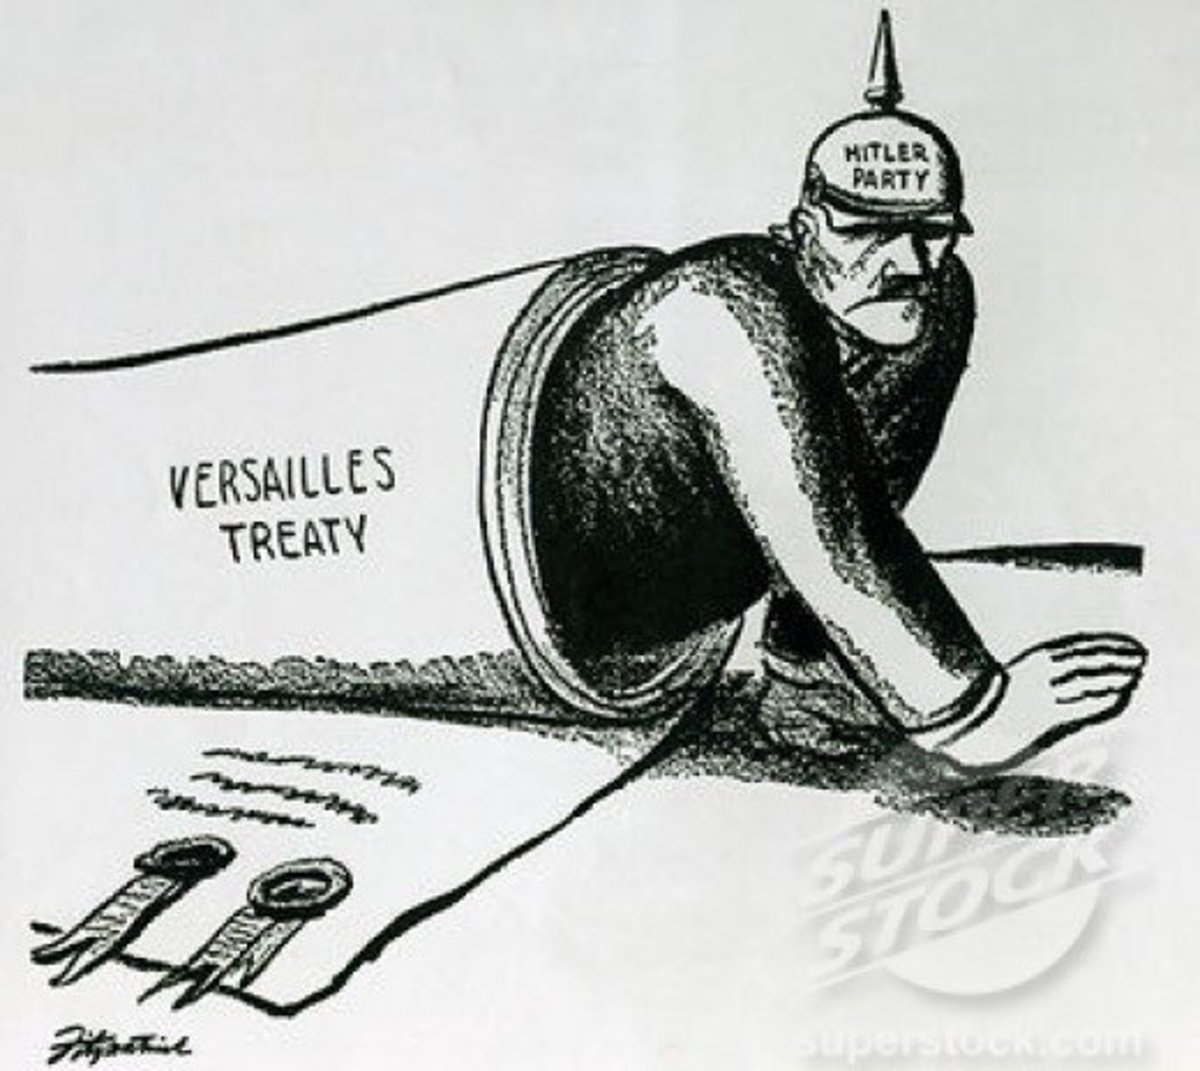 A fairly obvious cartoon : it is thanks to Versailles that Hitler could come to power in Germany, like a monster emerging from the barrel of some gun.